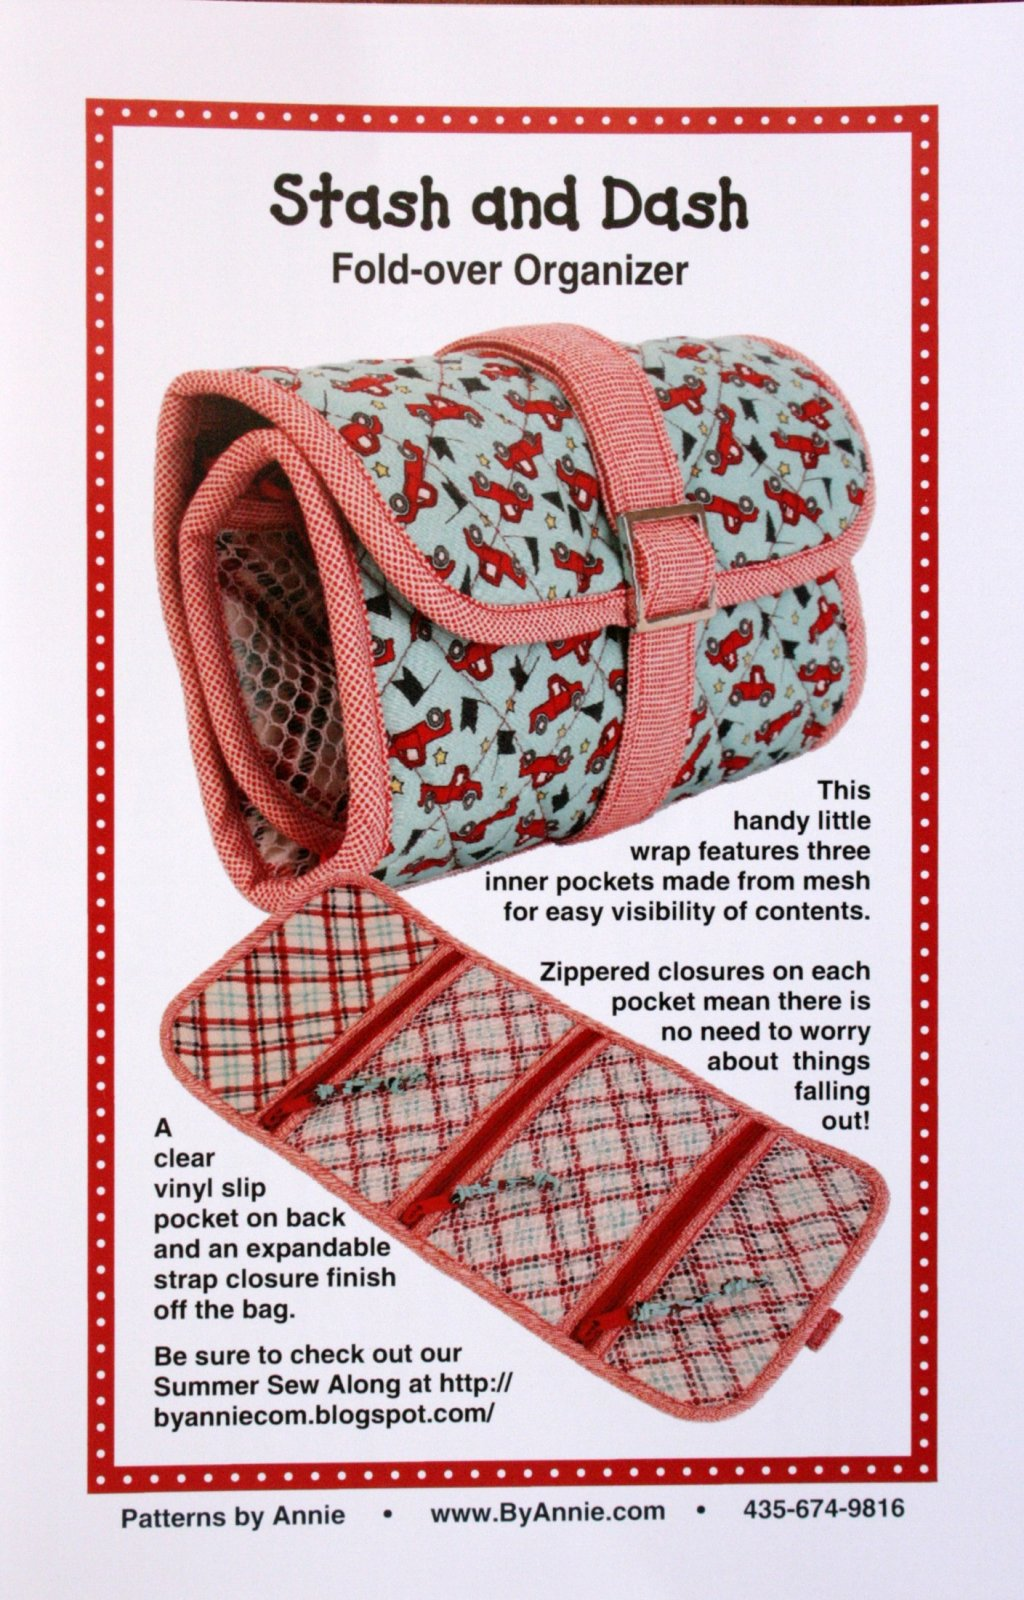 By Annie's, Stash and Dash Fold-over Organizer